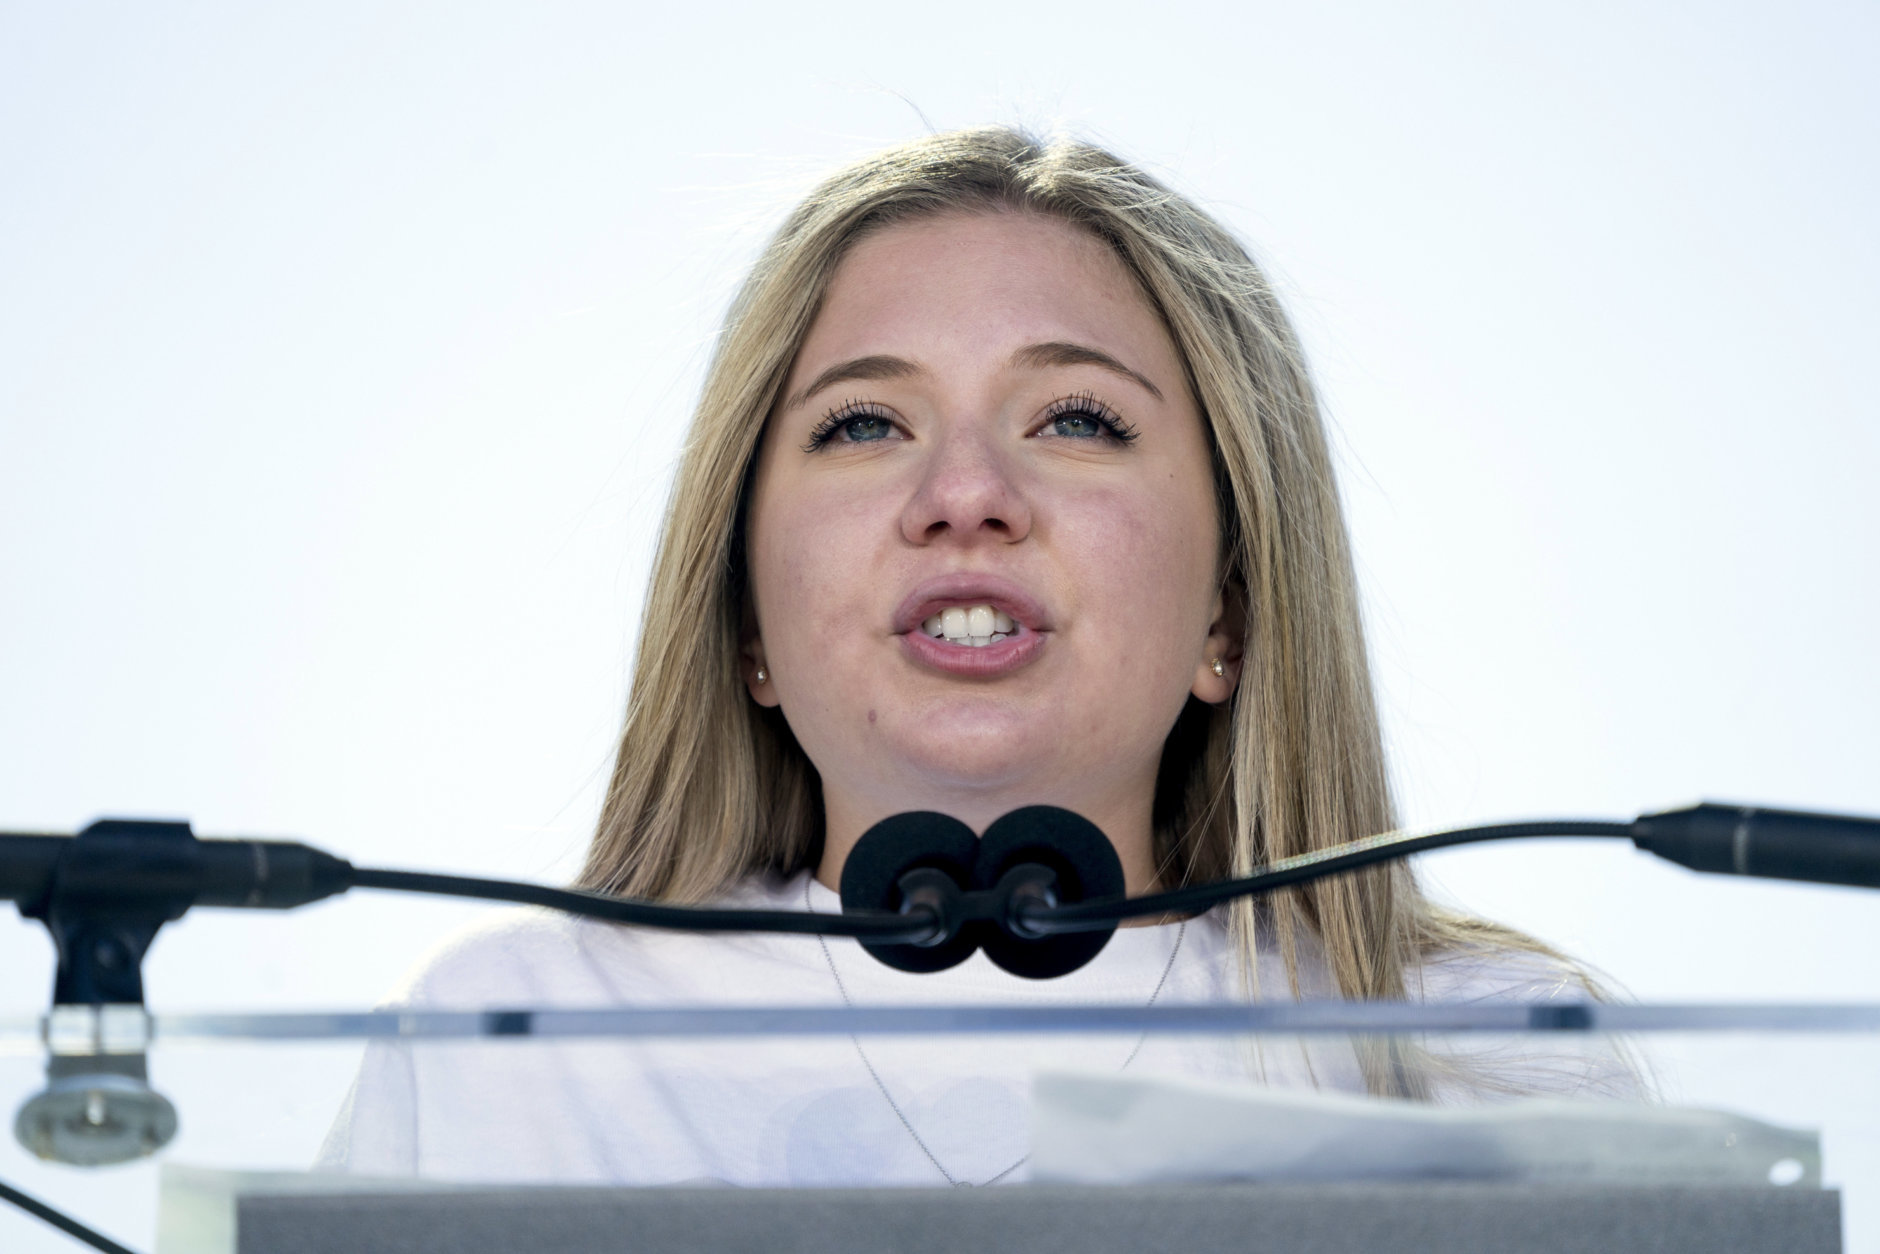 """Jaclyn Corin, a student at Marjory Stoneman Douglas High School in Parkland, Fla., and one of the organizers of the rally, speaks during the """"March for Our Lives"""" rally in support of gun control in Washington, Saturday, March 24, 2018. (AP Photo/Andrew Harnik)"""